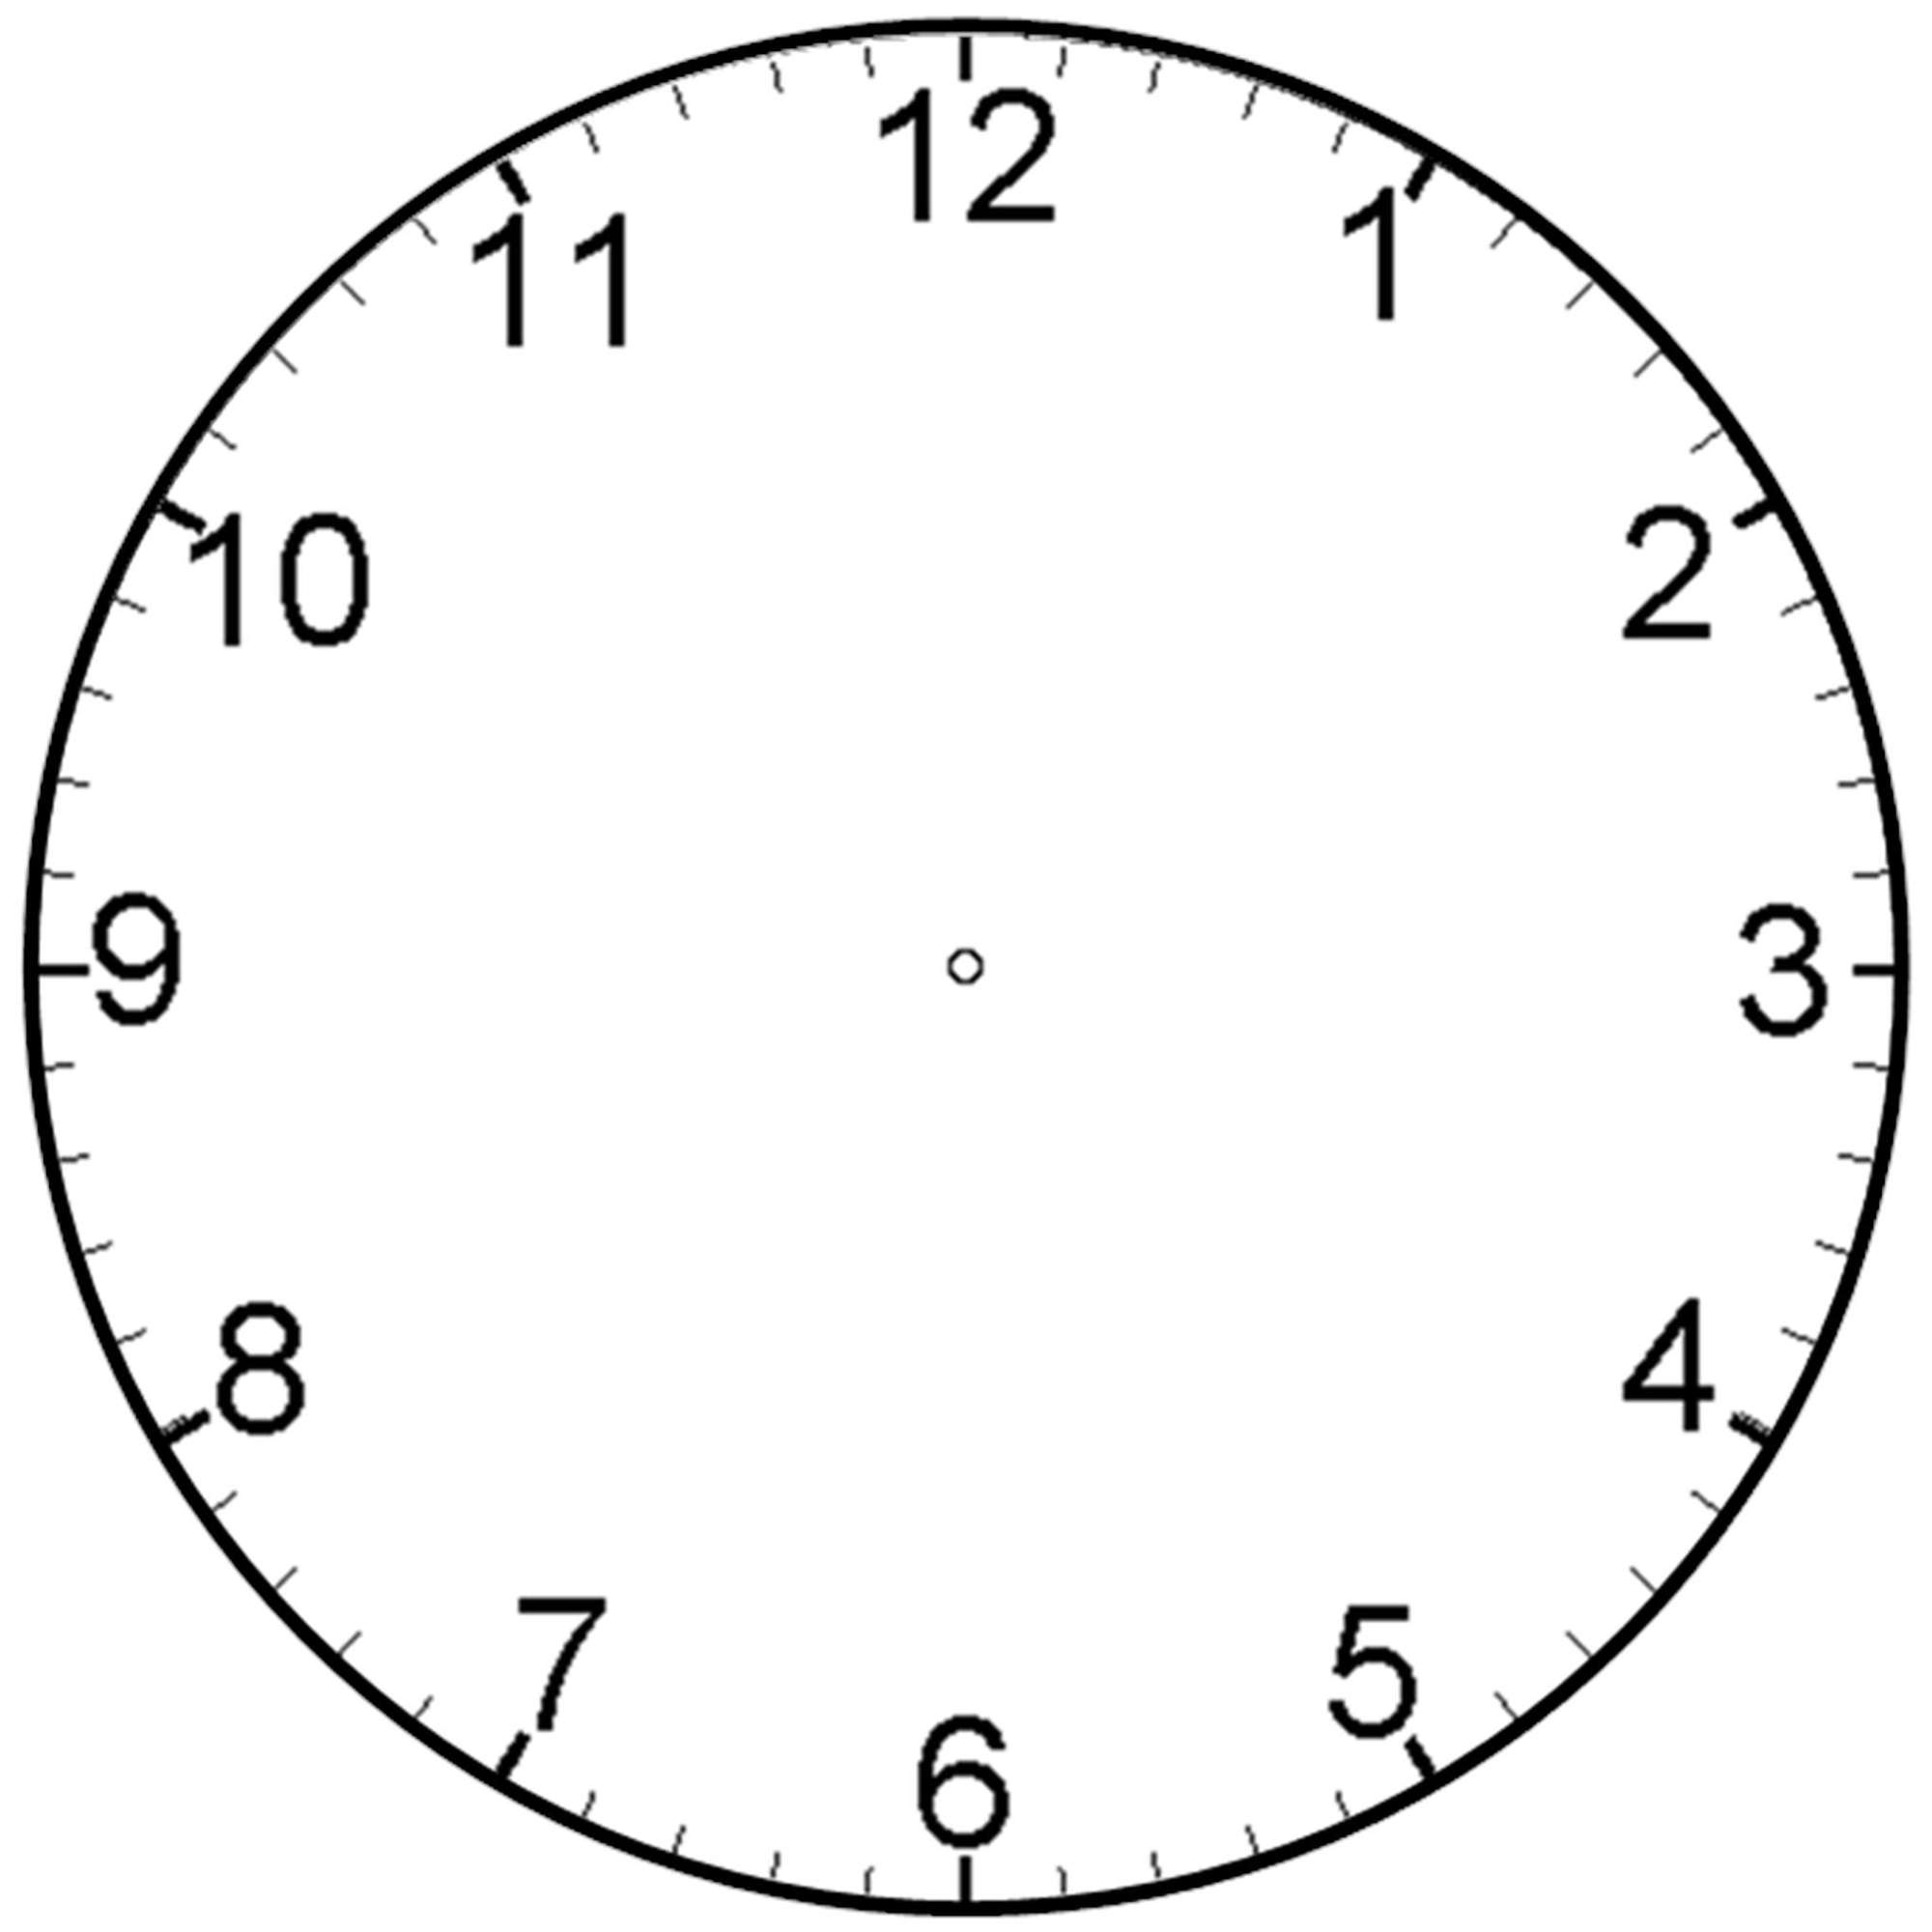 hight resolution of 2040x2040 blank clock clipart 9tzeojyjc jpeg